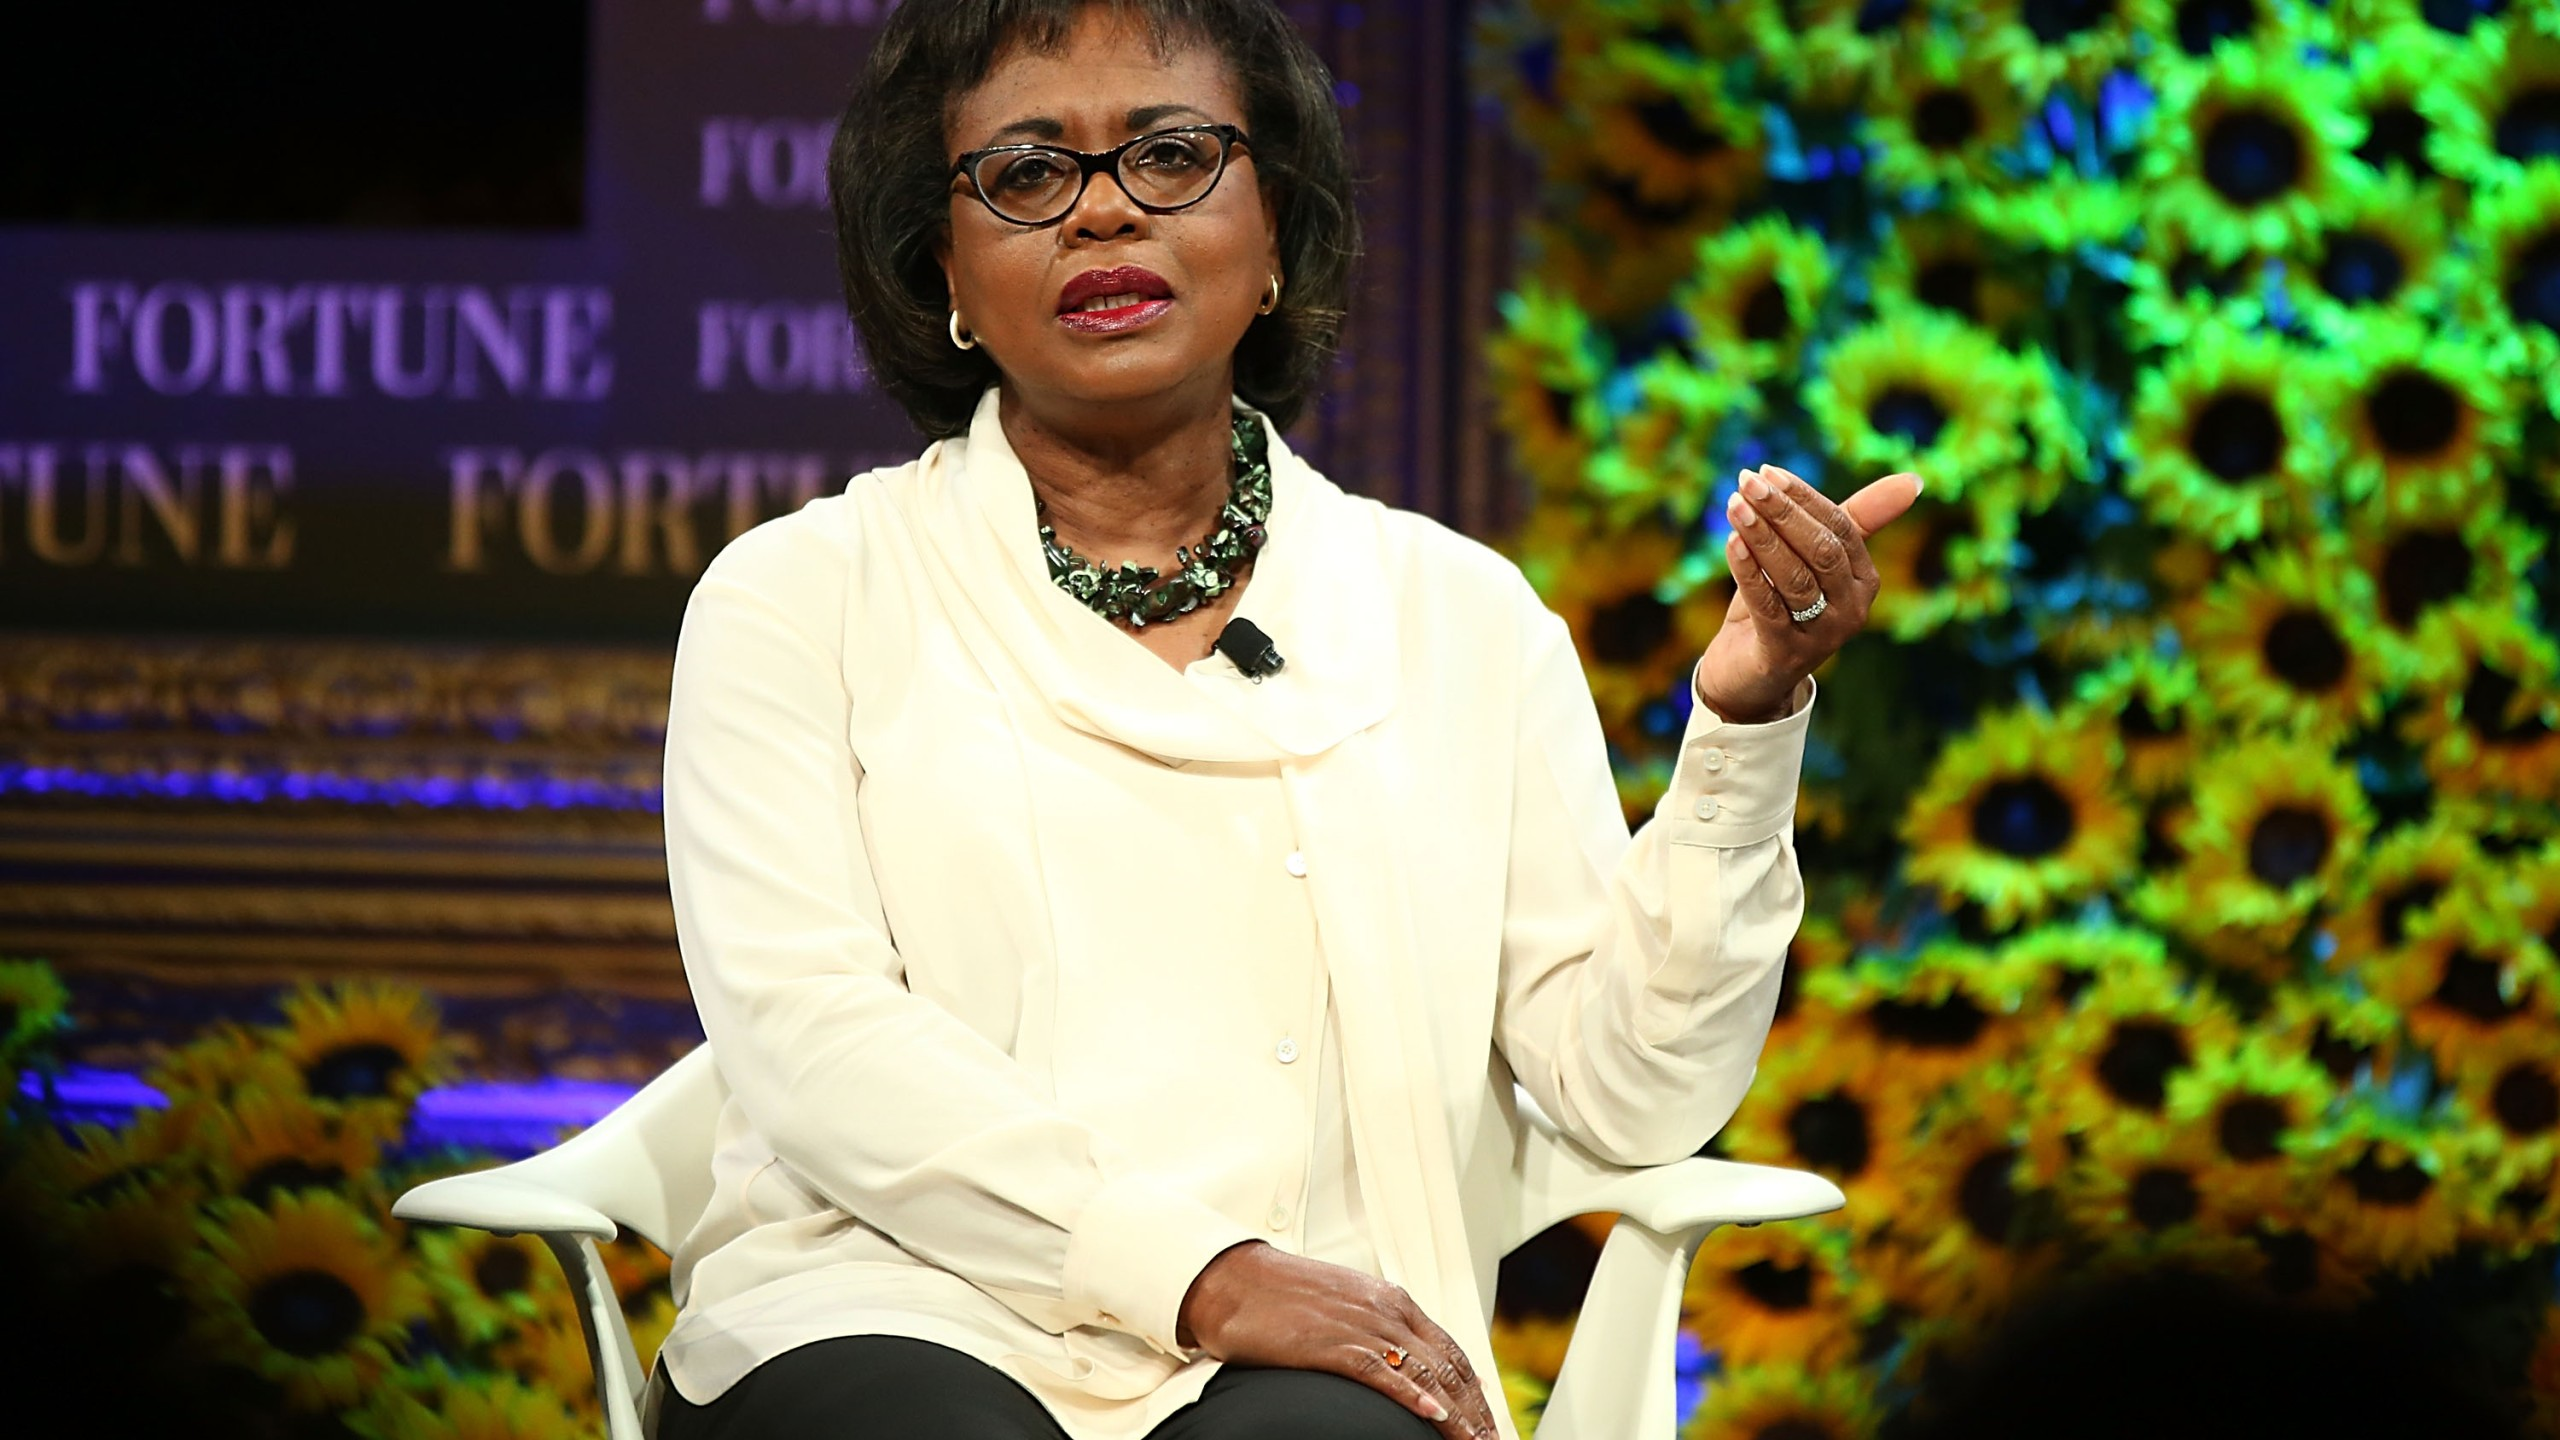 Anita Hill speaks onstage at the Fortune Most Powerful Women Summit 2016 on Oct. 19, 2016 in Dana Point. (Credit: Joe Scarnici/Getty Images for Fortune)